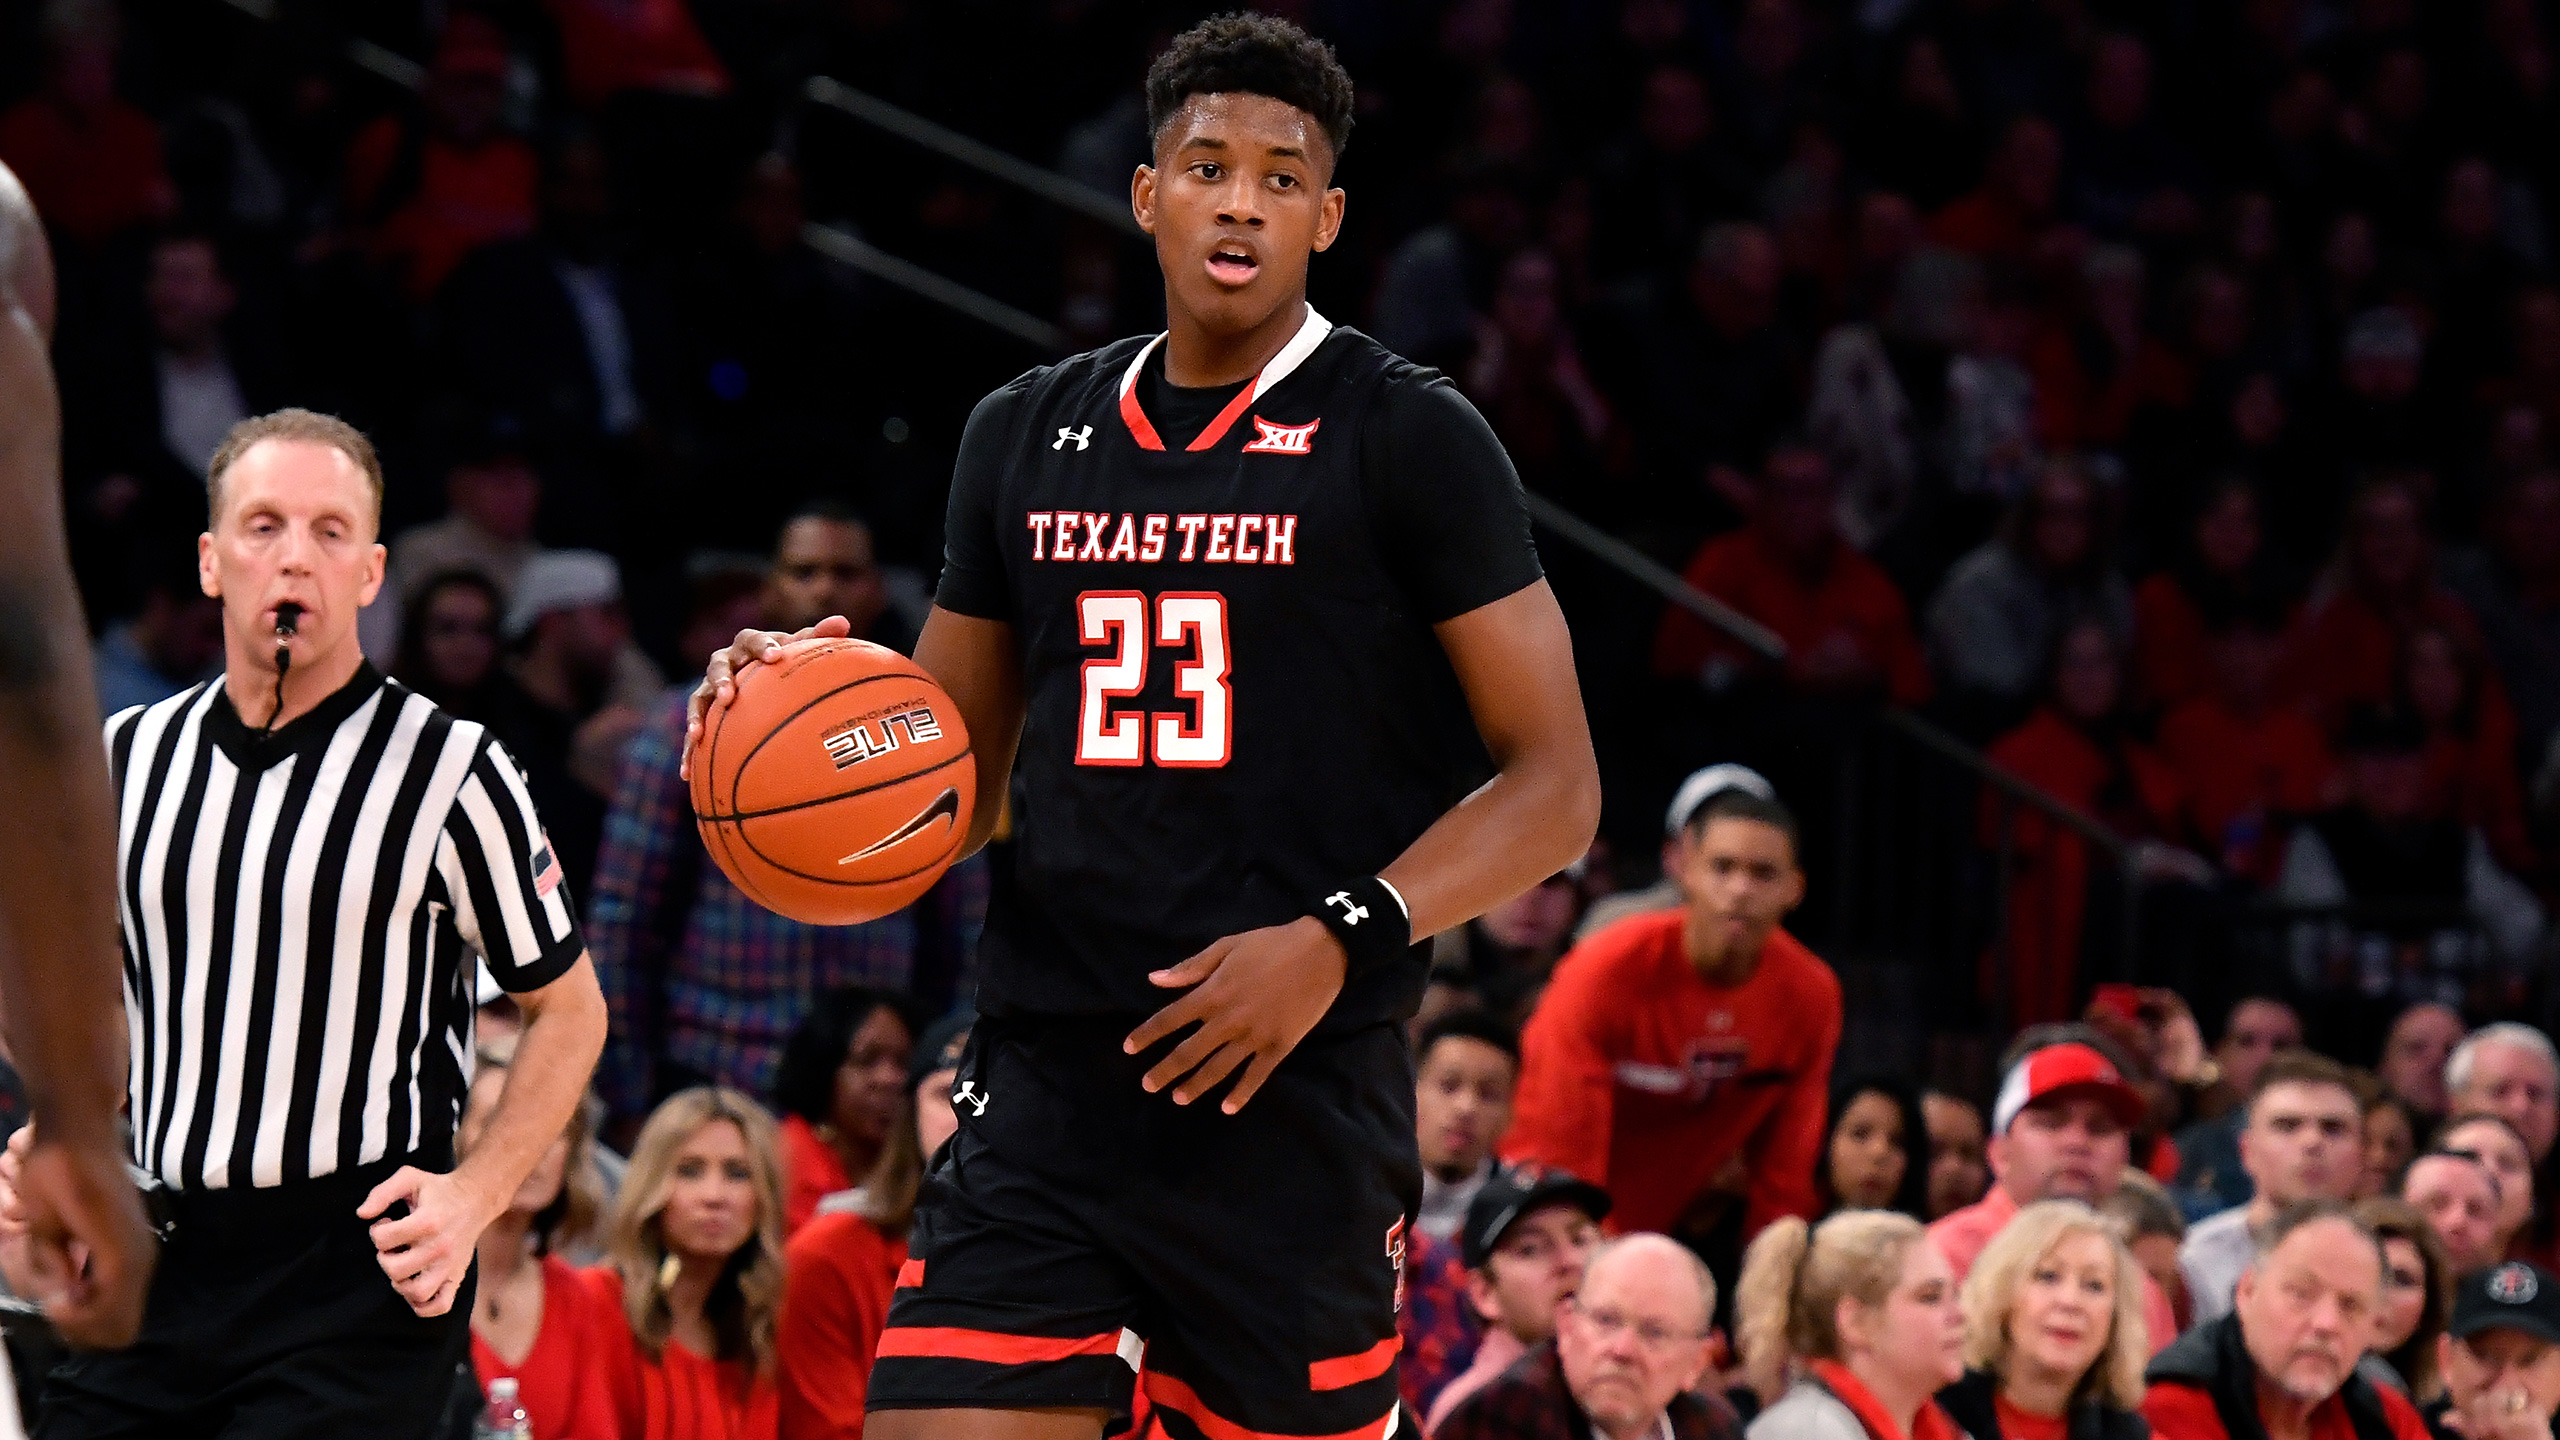 #8 Texas Tech vs. Baylor (M Basketball) (re-air)